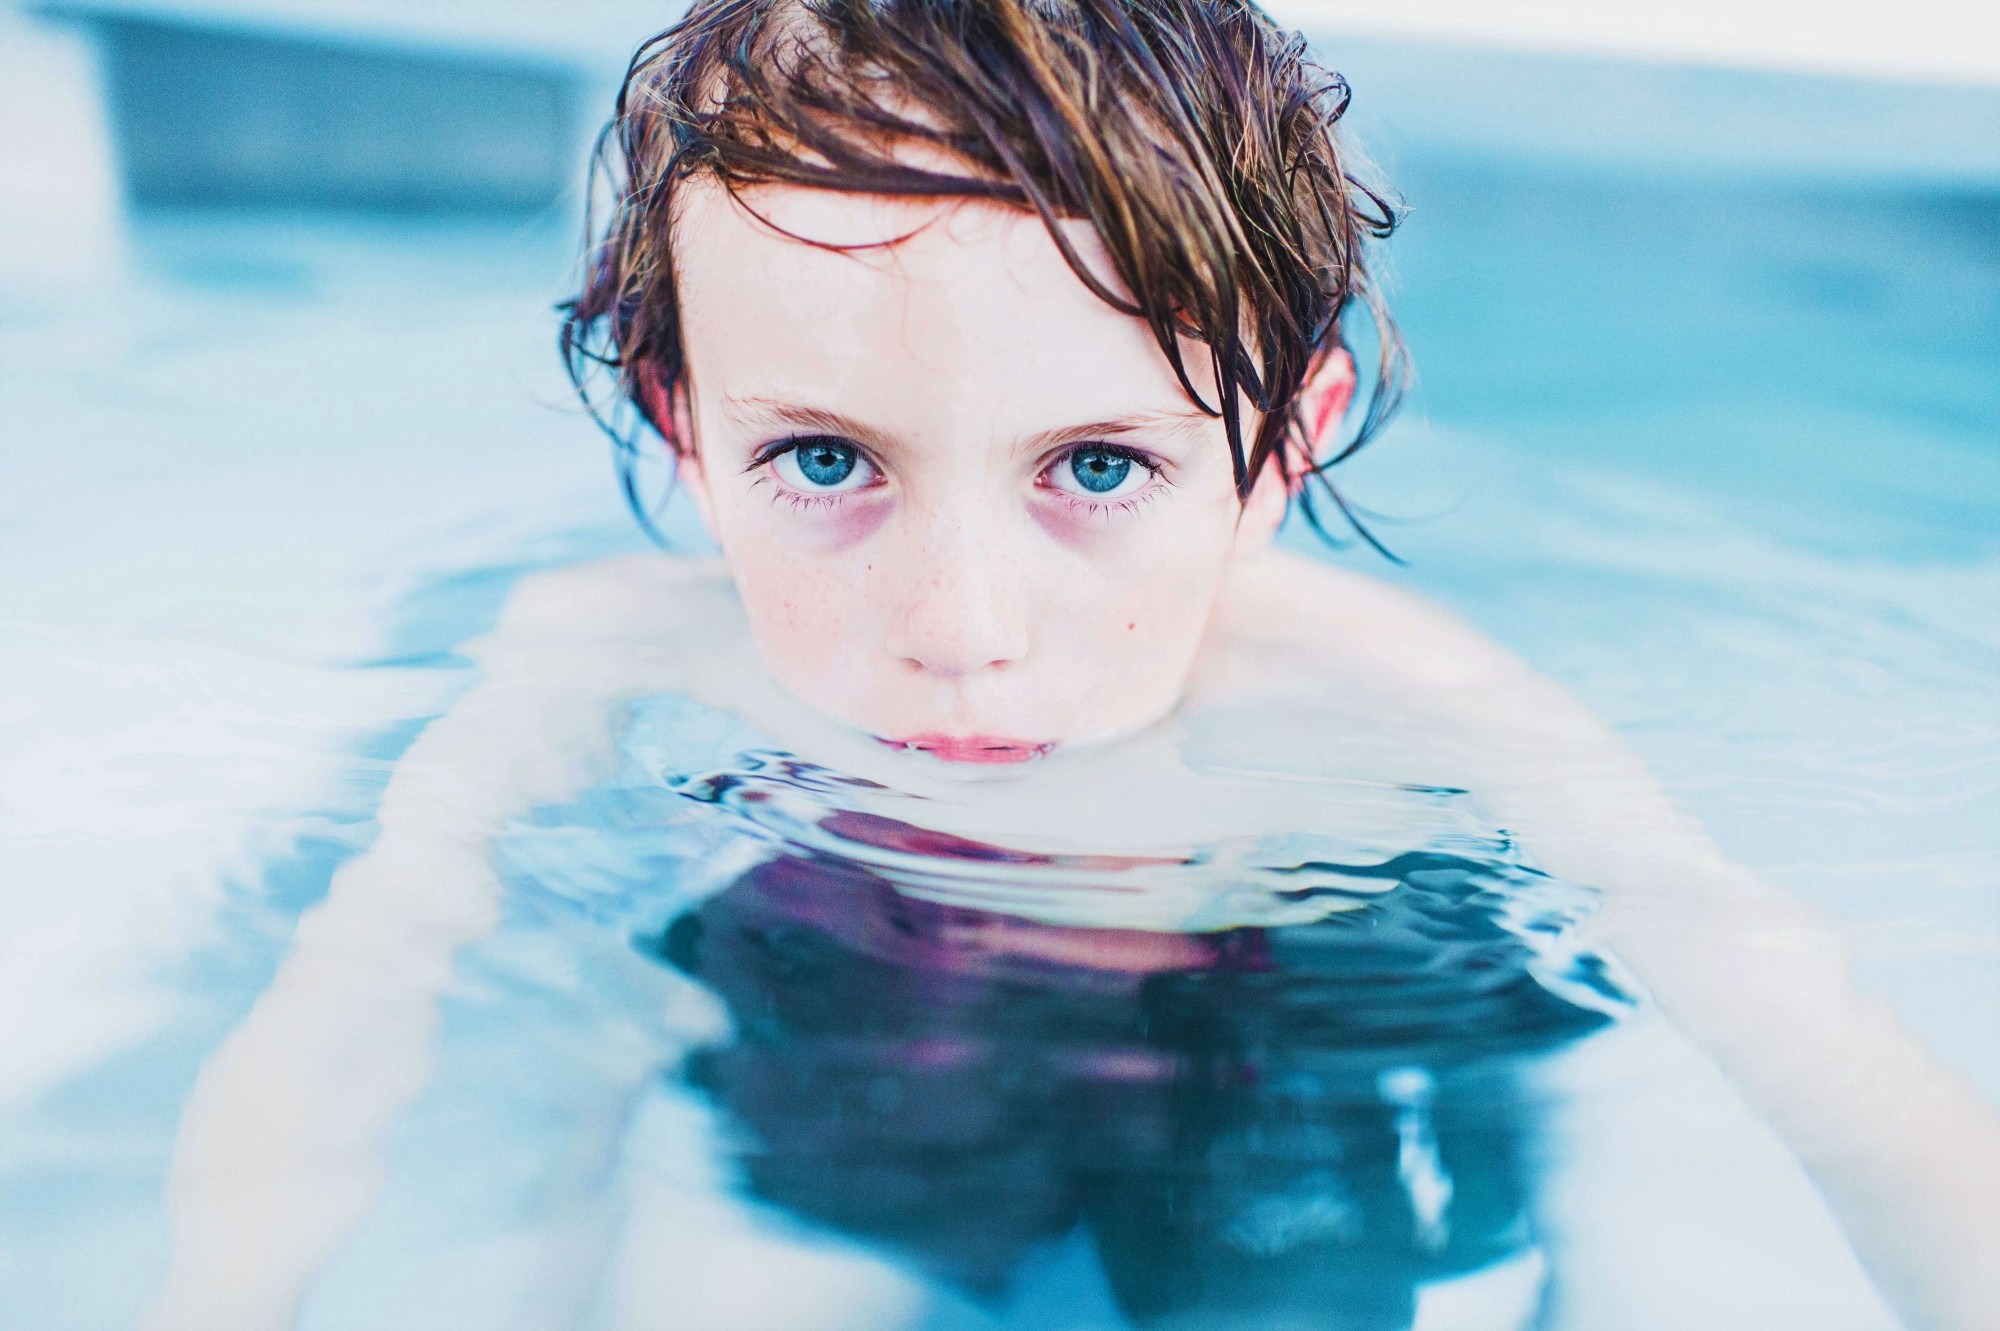 """Young boy swimming in a pool to depict how the baby on the cover of """"Nevermind"""" by Kurt Cobain and Nirvana has grown, and it's coming of age by rising above the water."""